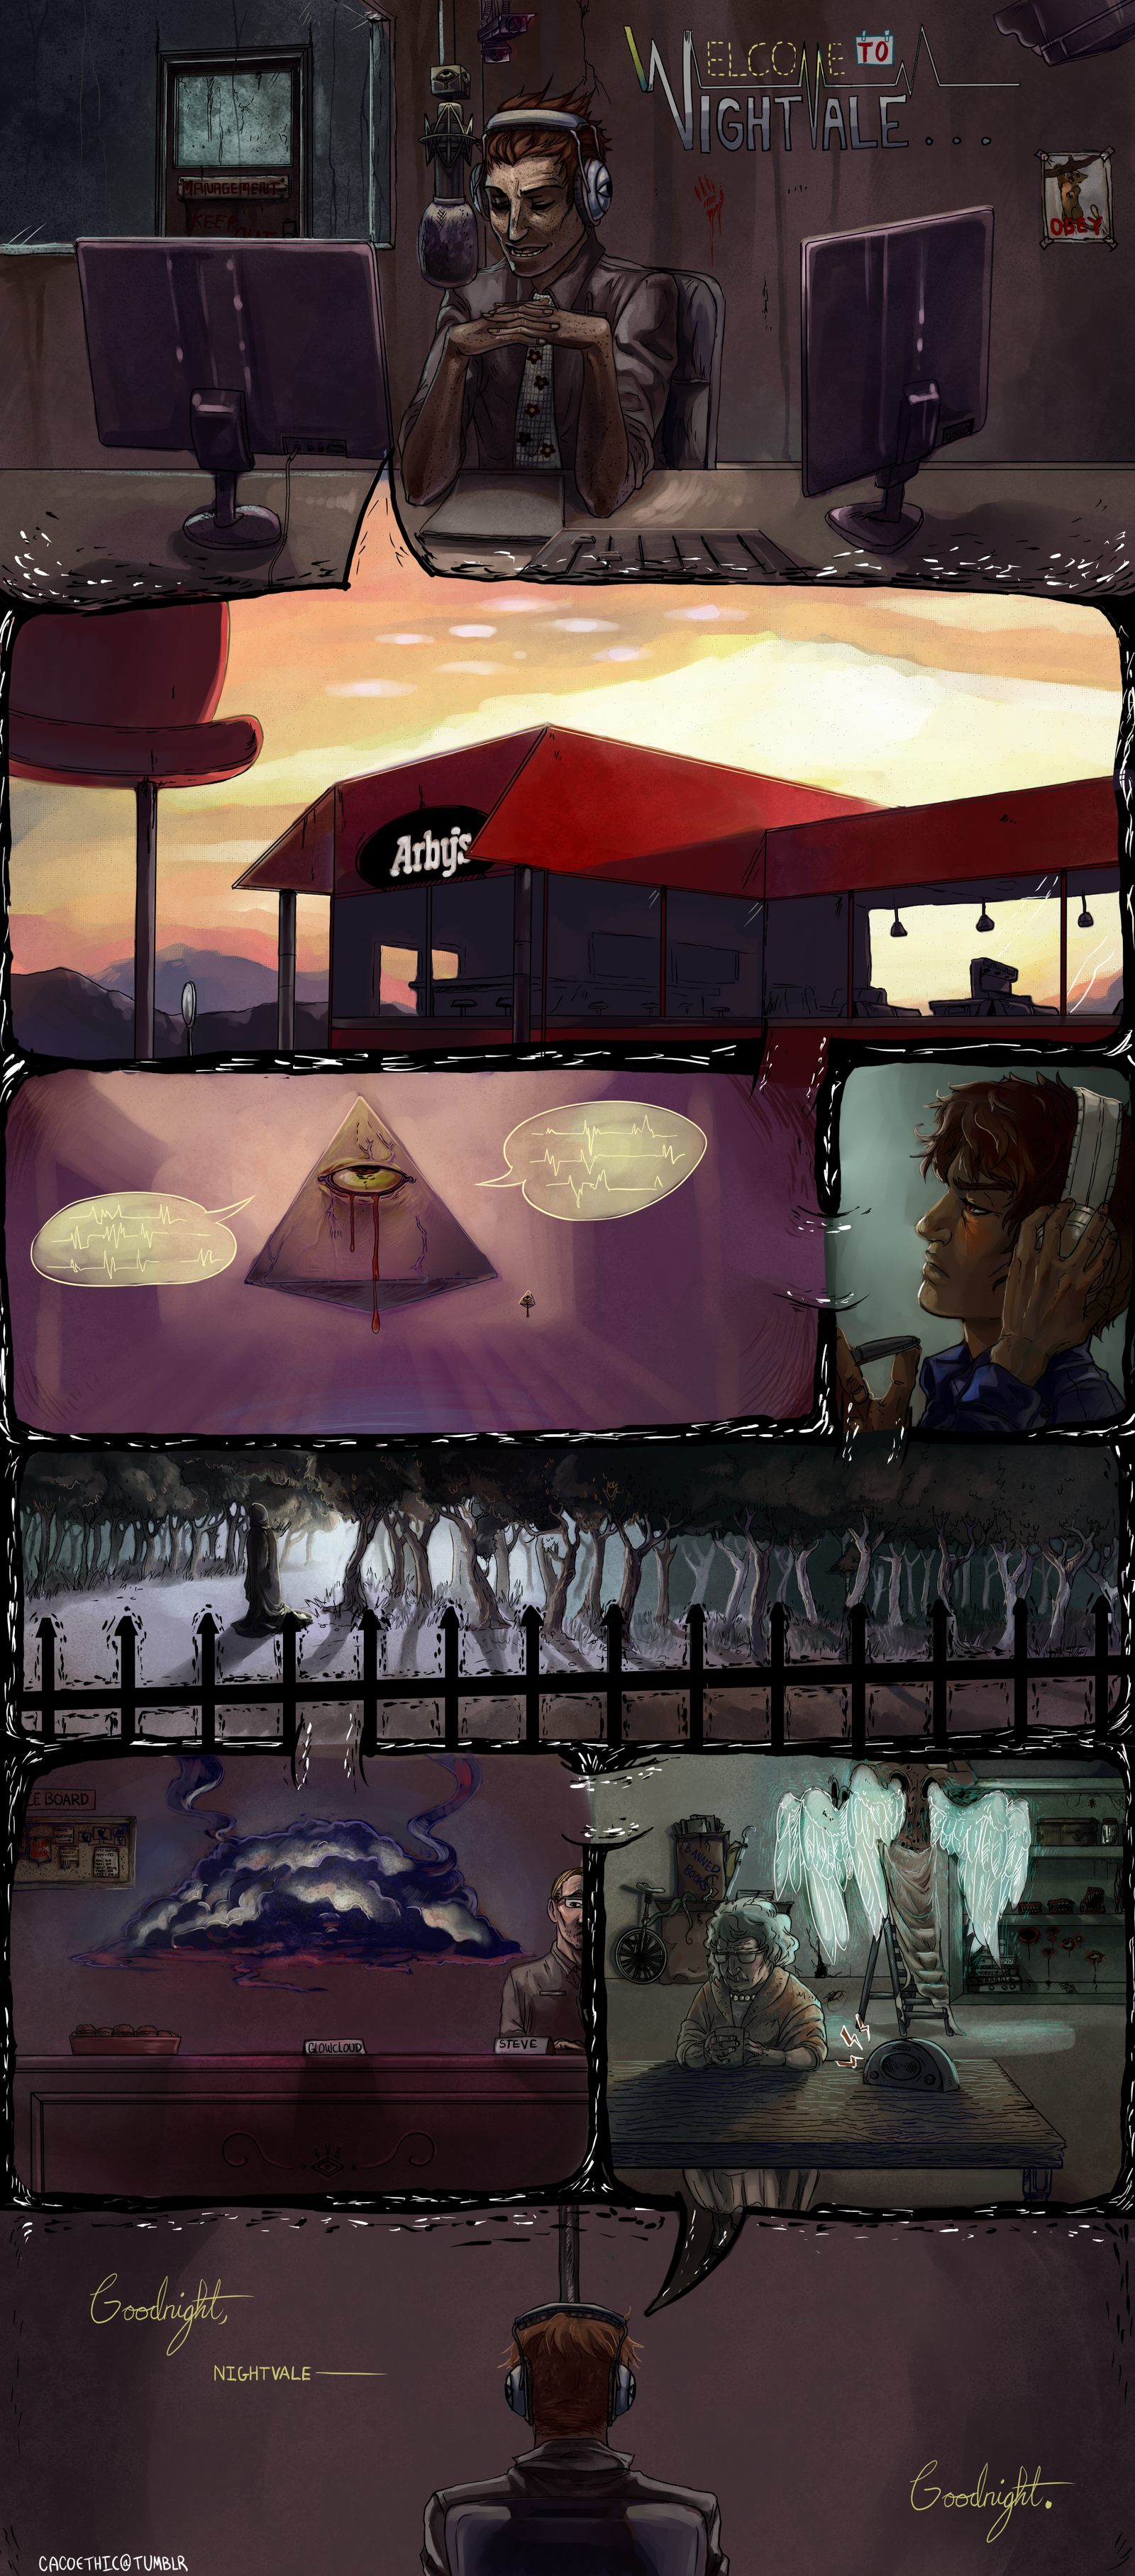 Welcome to Night Vale. by cacogenic.deviantart.com on @deviantART